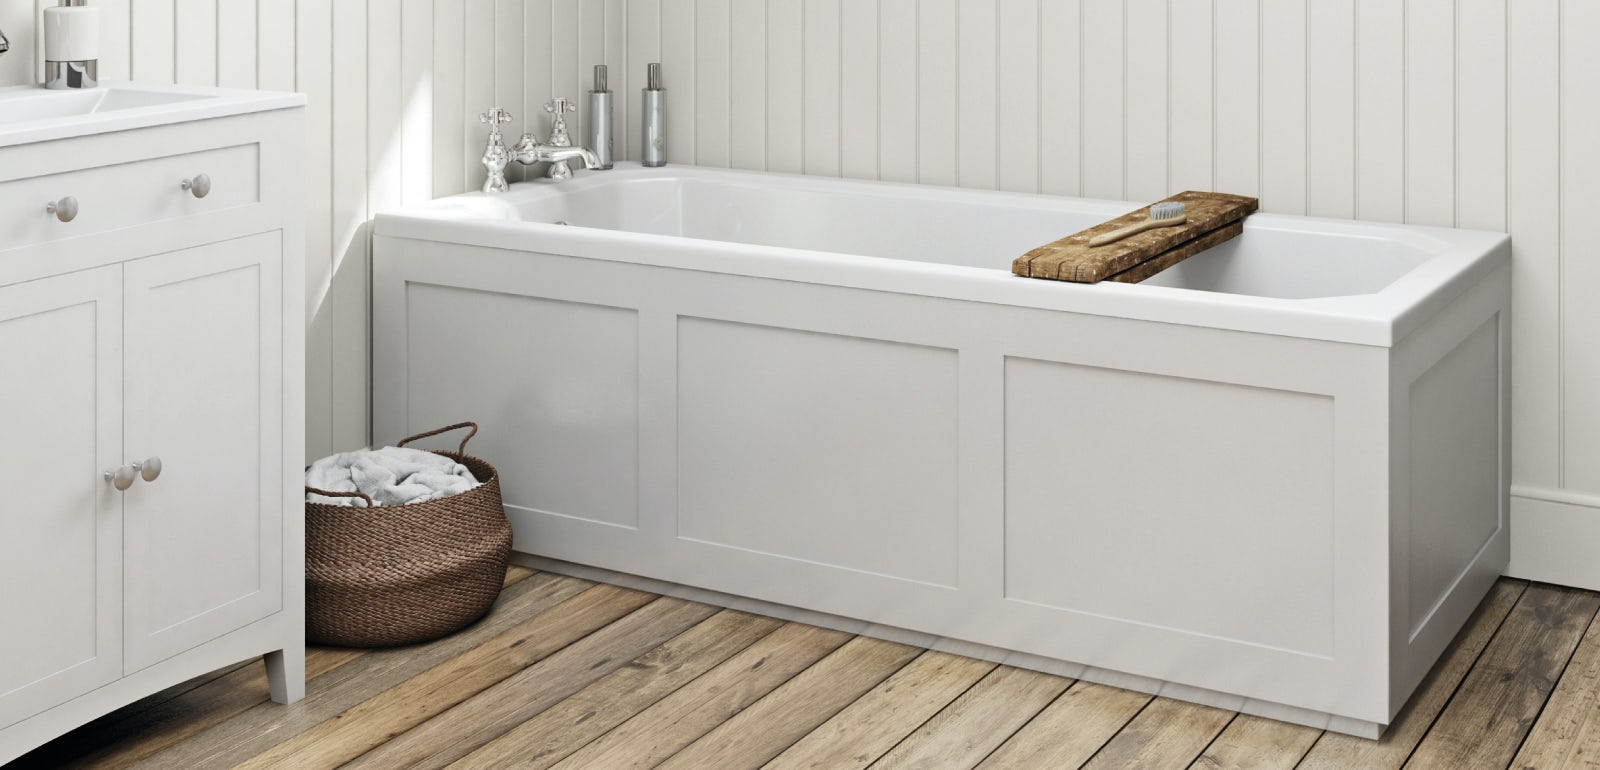 How To Fit A Wooden Bath Panel In 9 Easy Steps Victoriaplum Com